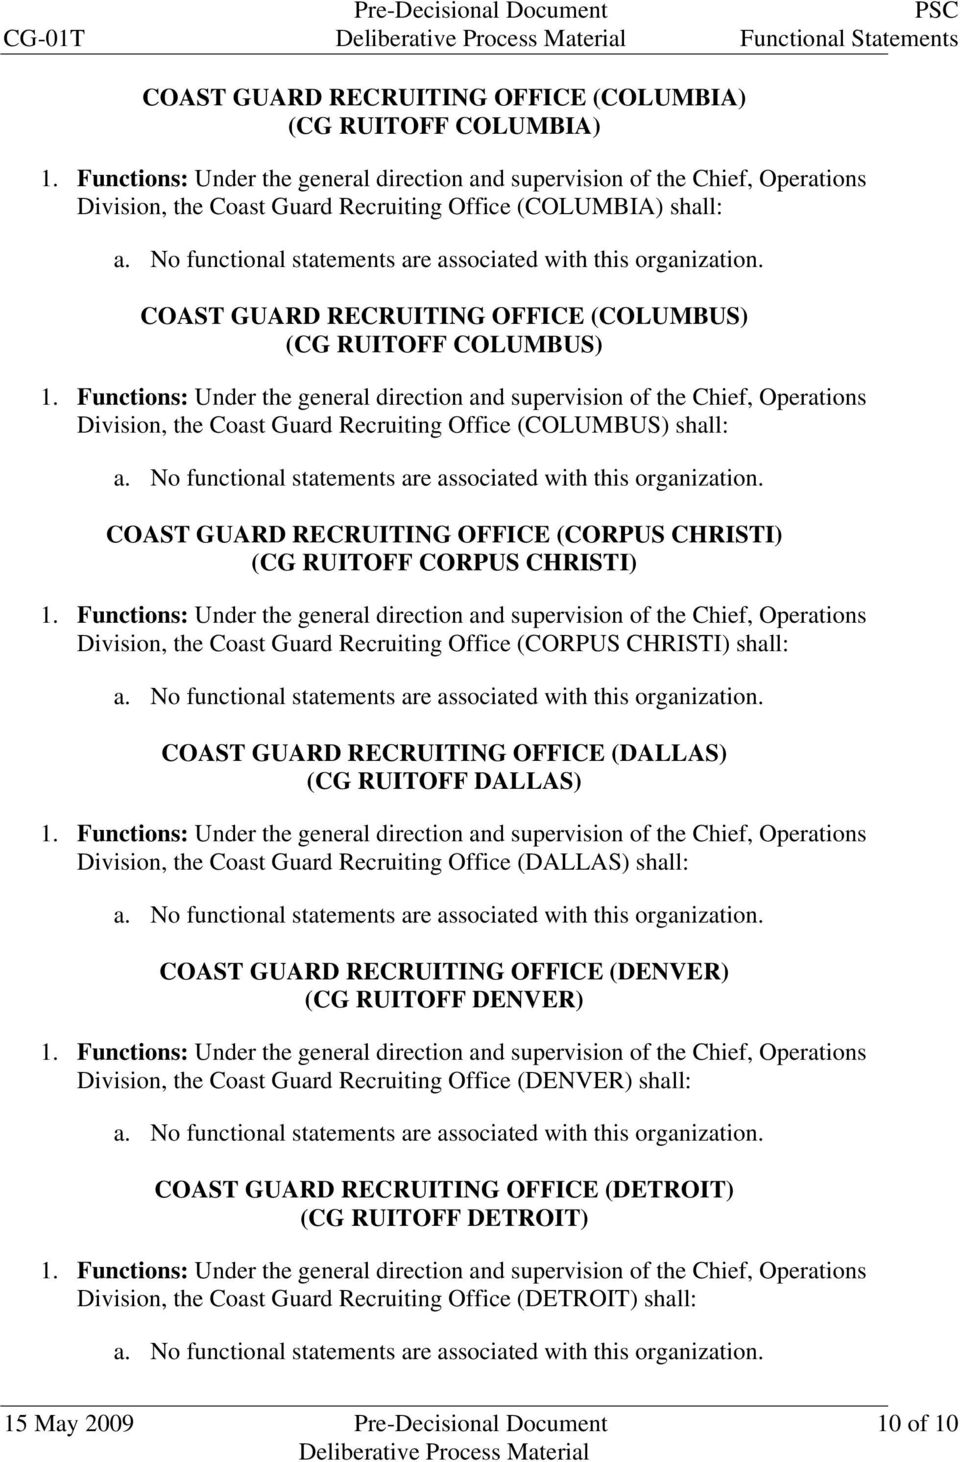 (CORPUS CHRISTI) shall: COAST GUARD RECRUITING OFFICE (DALLAS) (CG RUITOFF DALLAS) Division, the Coast Guard Recruiting Office (DALLAS) shall: COAST GUARD RECRUITING OFFICE (DENVER) (CG RUITOFF